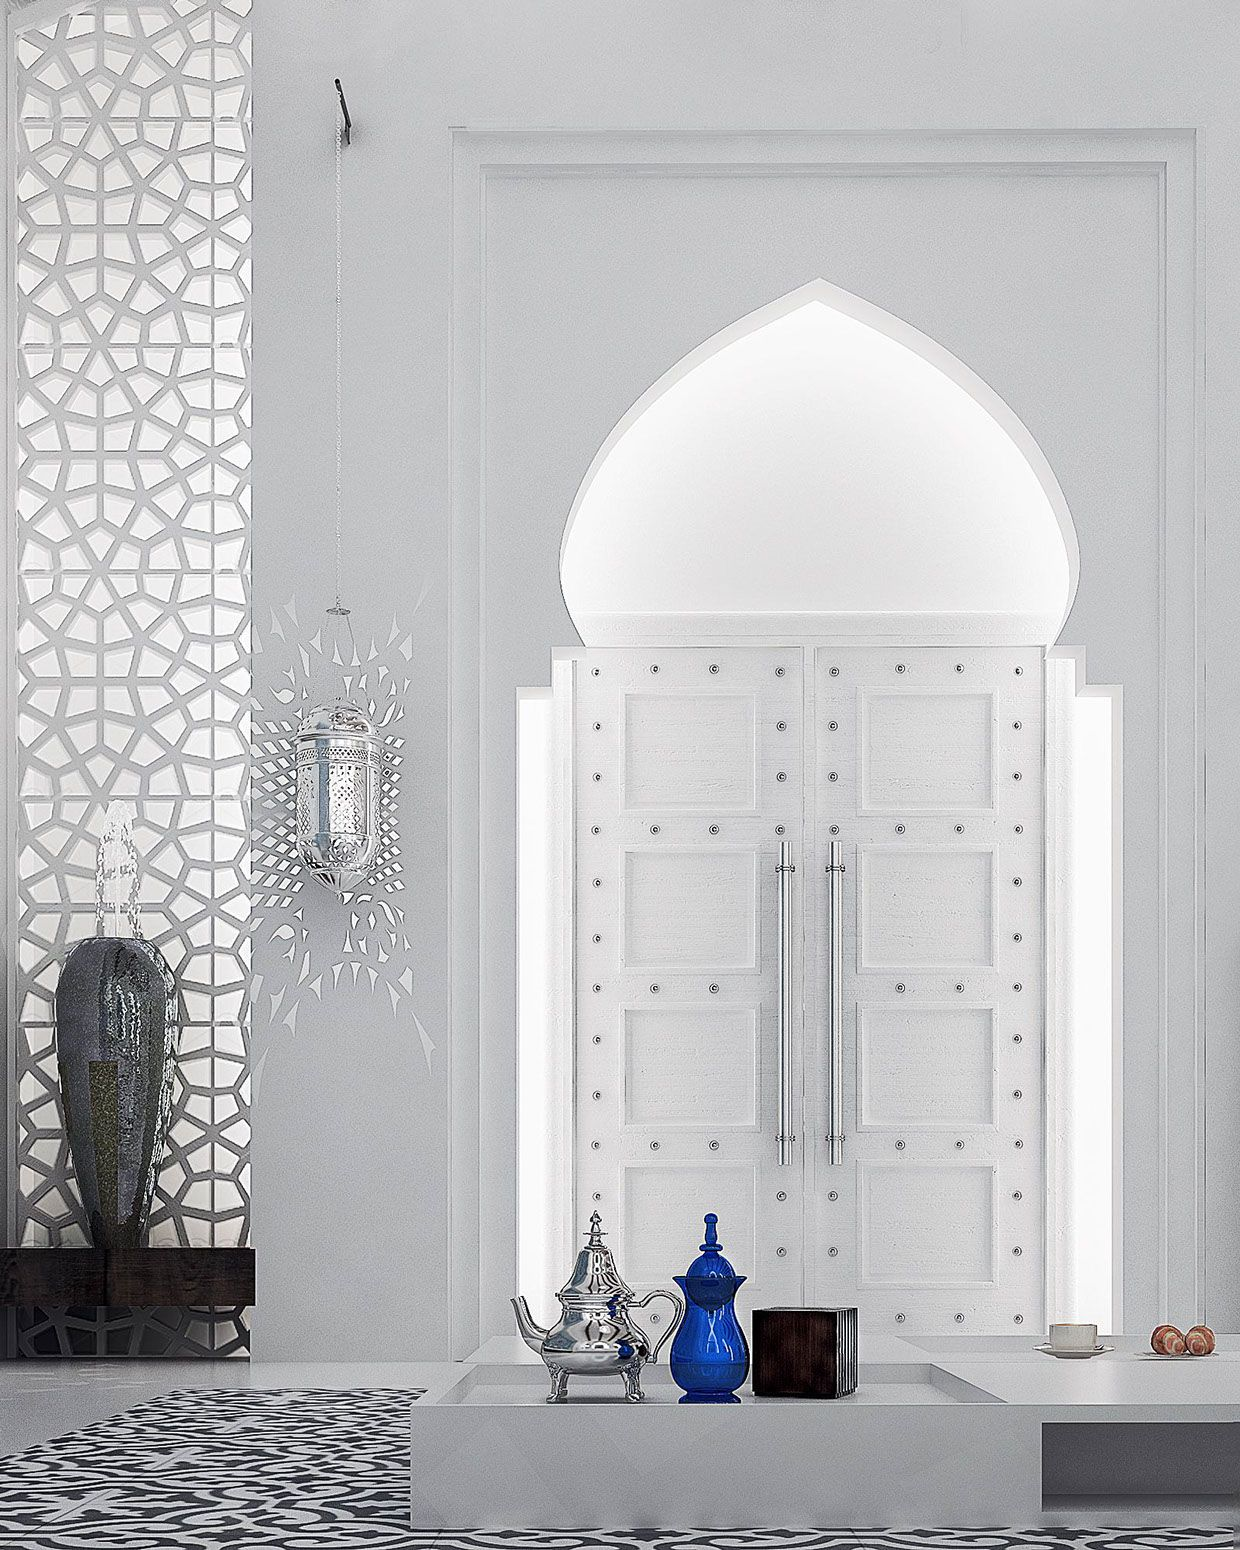 Modern moroccan home decor - Find This Pin And More On Morocco Style Home Designing Moroccan Style